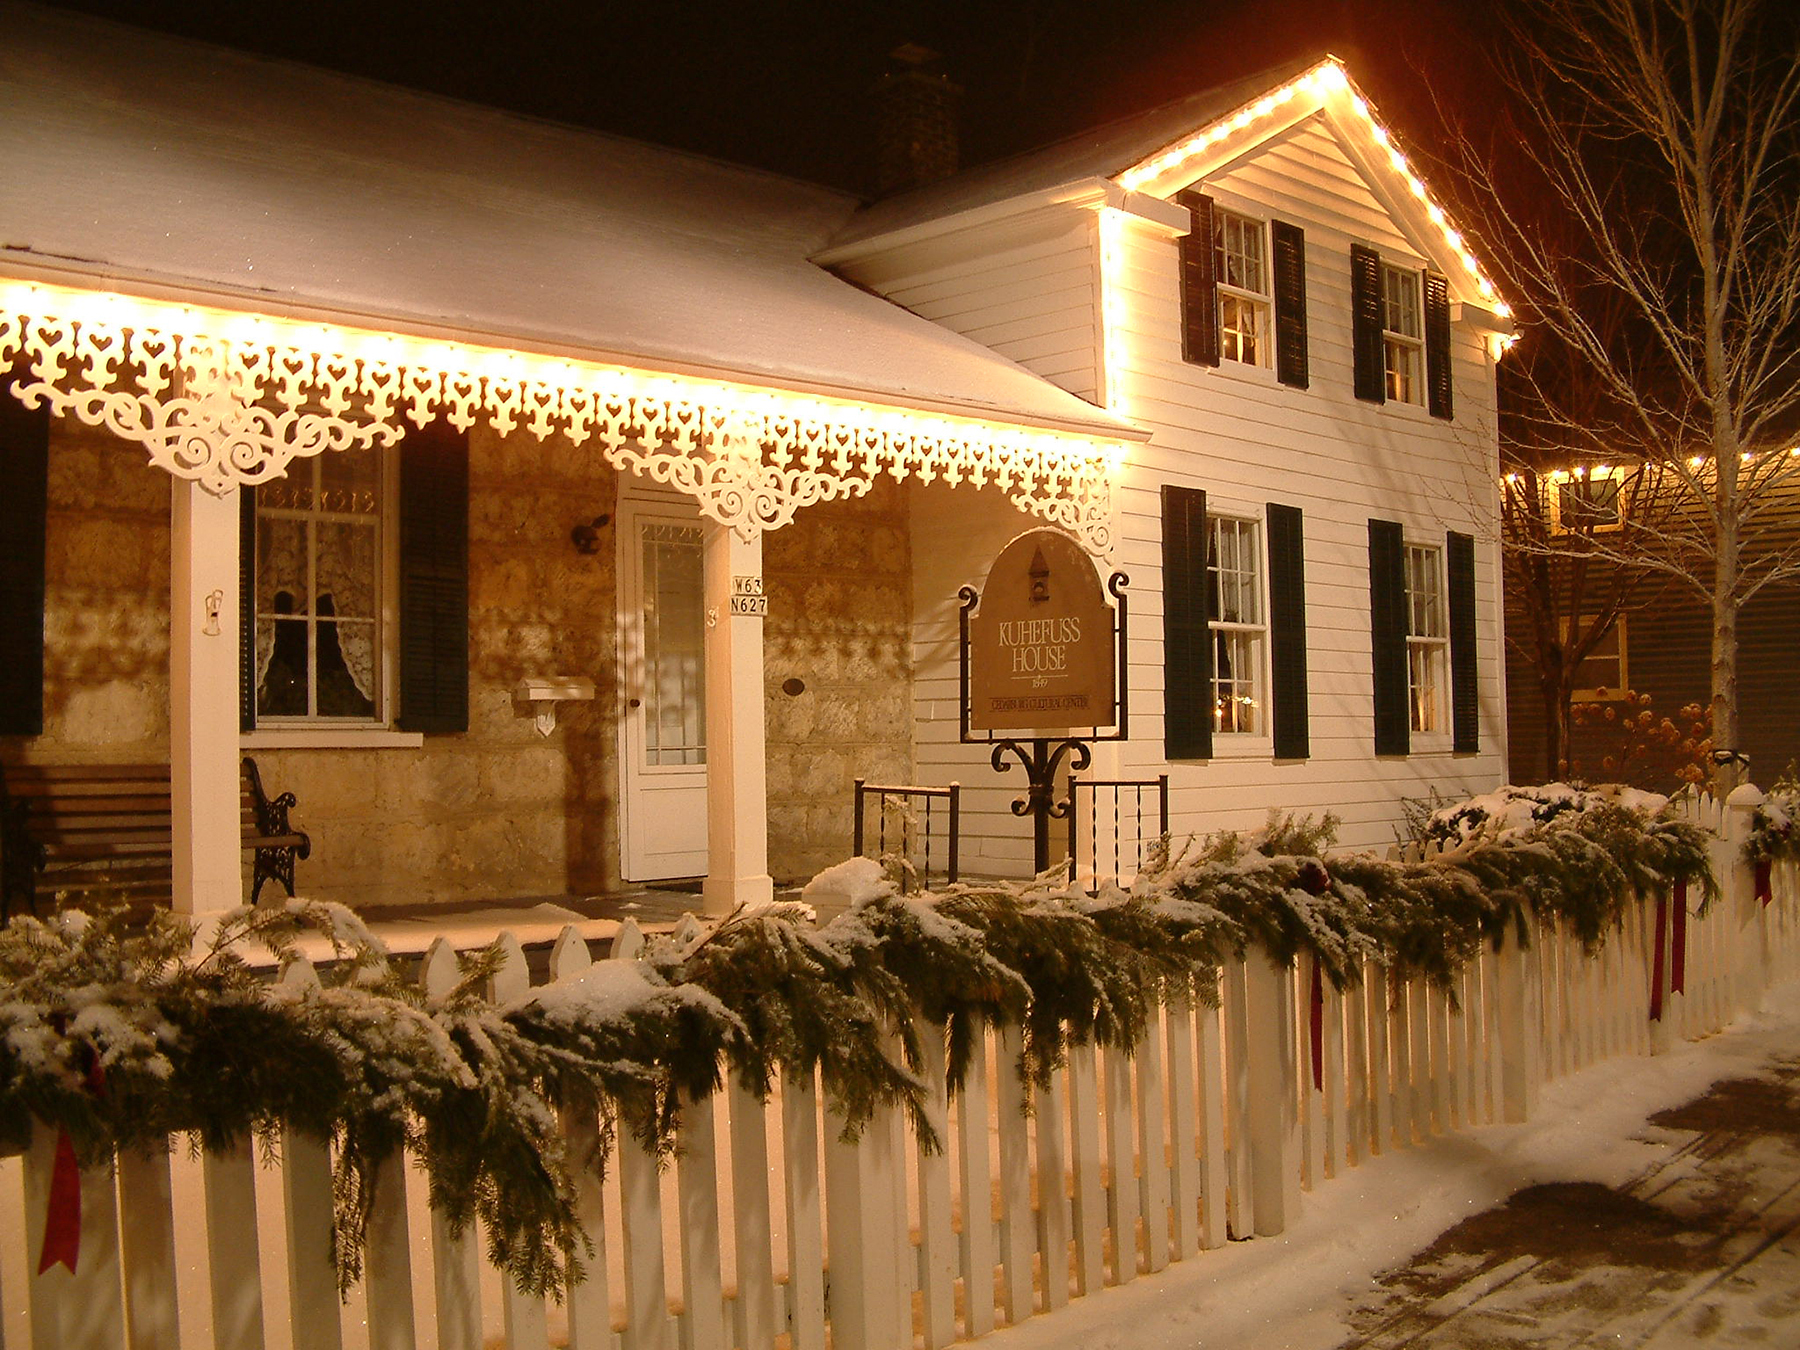 Holiday Traditions during the Civil War era featured in Historic Kuhefuss House Museum Tours